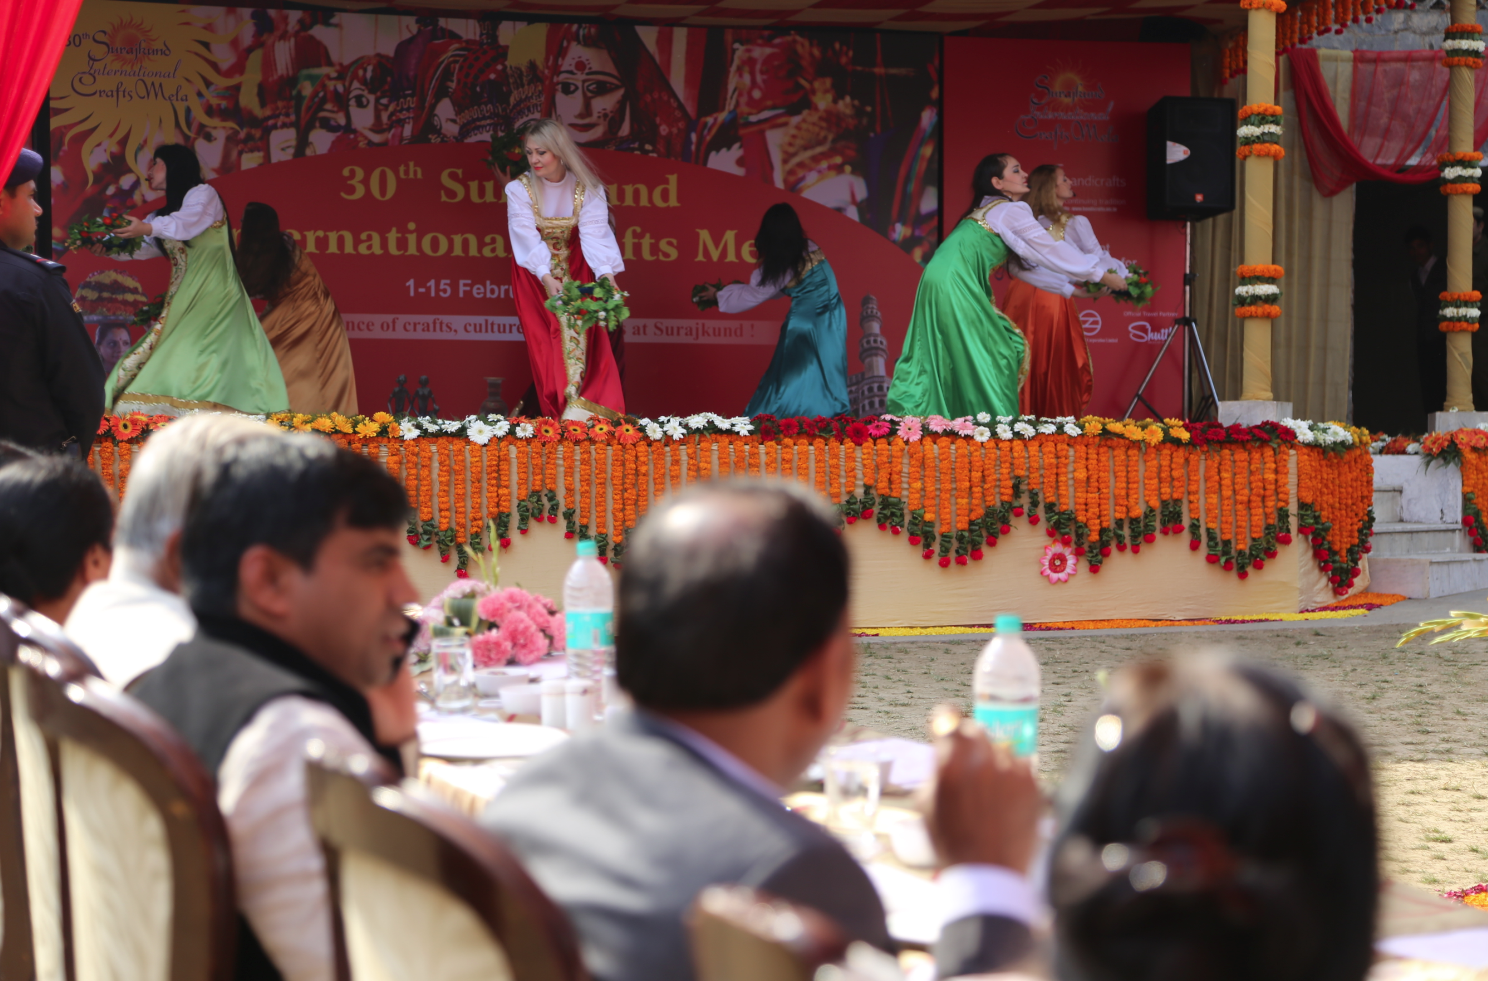 KrasA (Beauty) Ensemble of Folk Song at the international Crafts Mela at Surajkund.